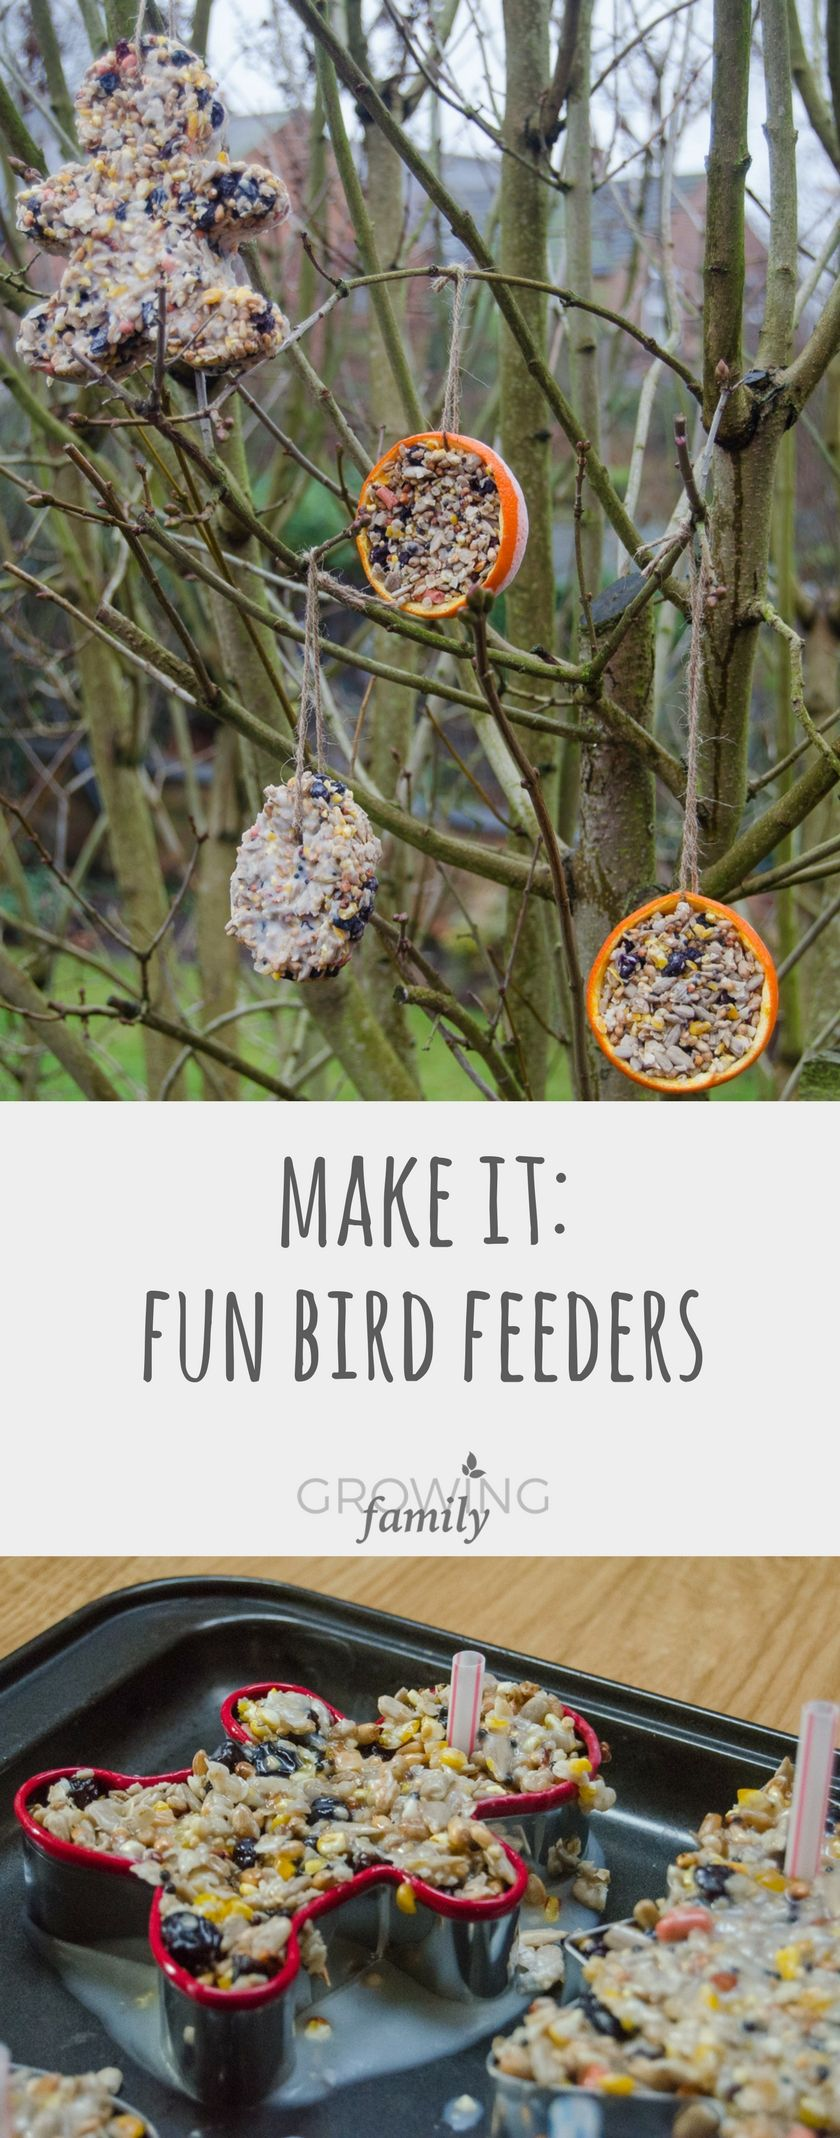 How to make fun bird feeders is part of Gardening for kids - How to make your own homemade bird feeders  a simple and fun nature activity for children which will encourage wild birds to visit your garden!